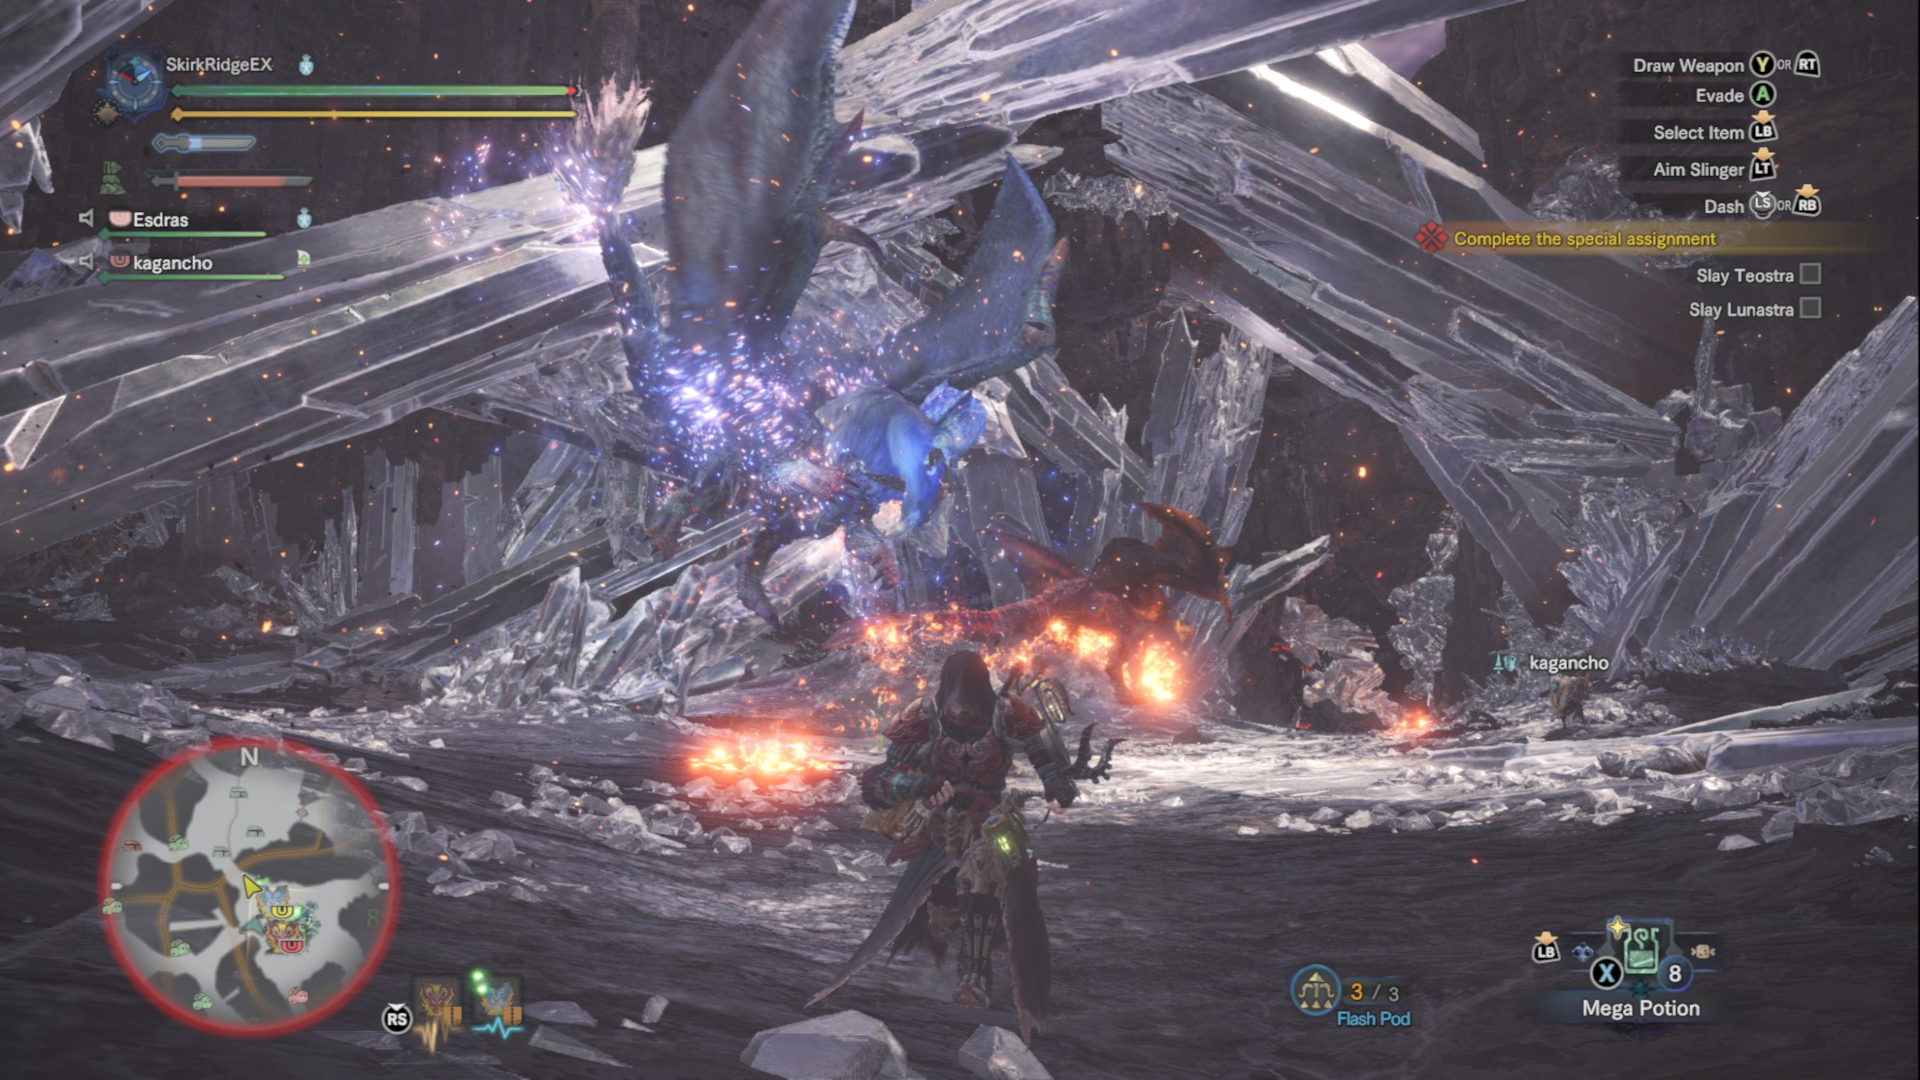 Hunters fighting both Teostra and Lunastra in the Elder's Recess.